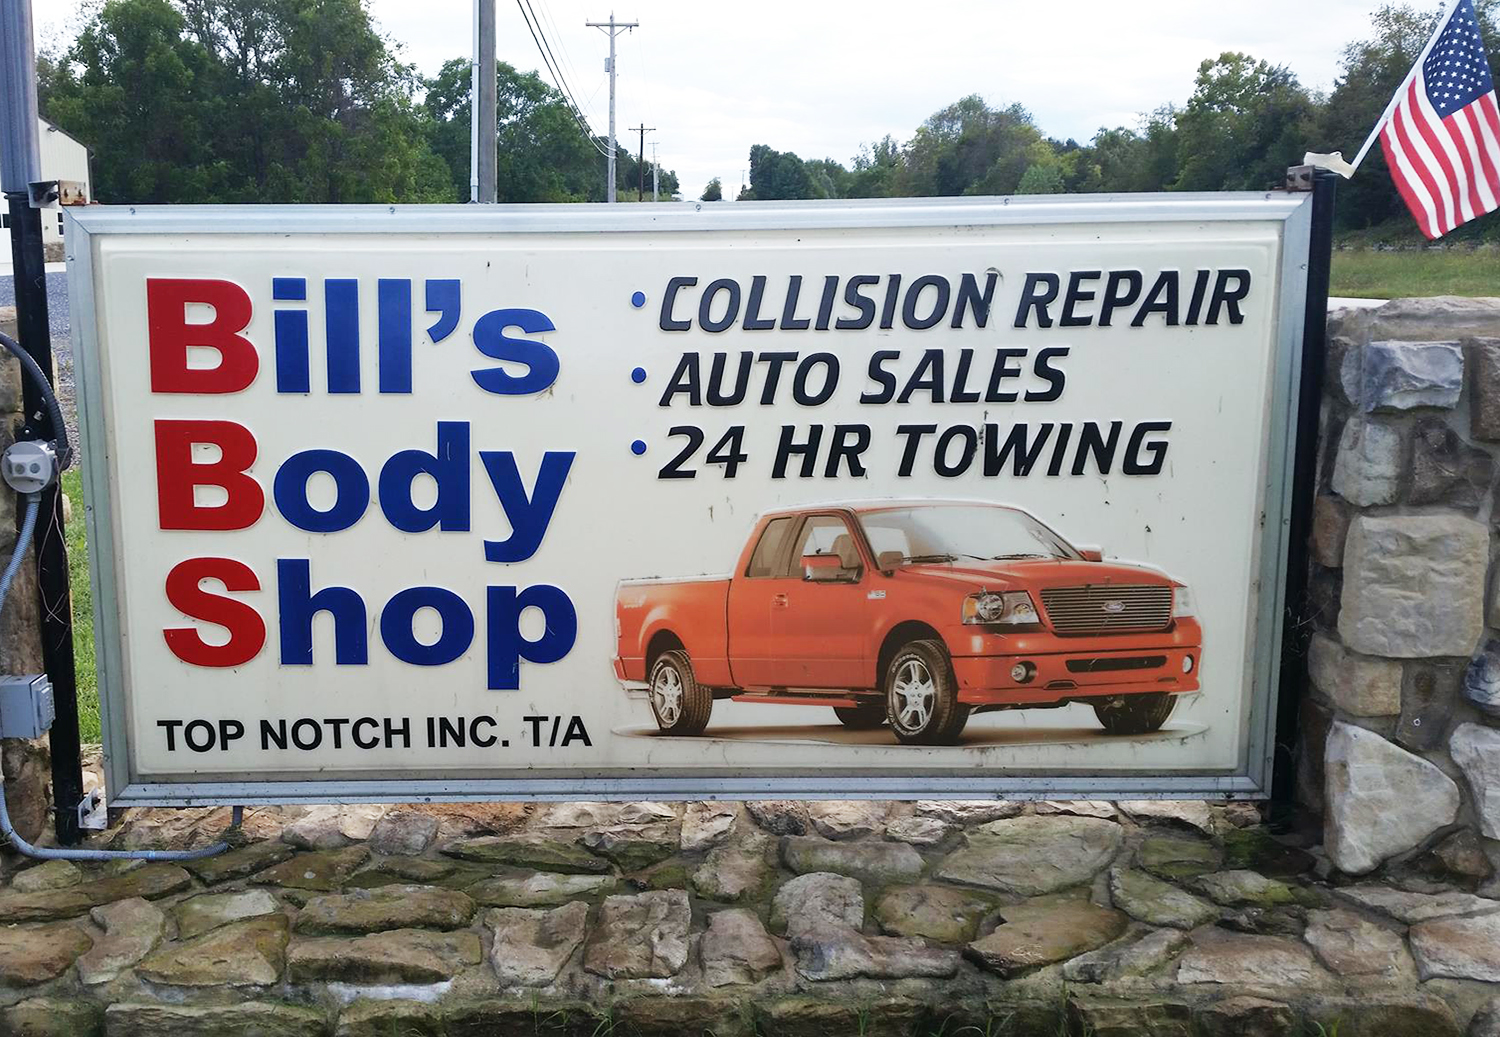 Bill's Body Shop